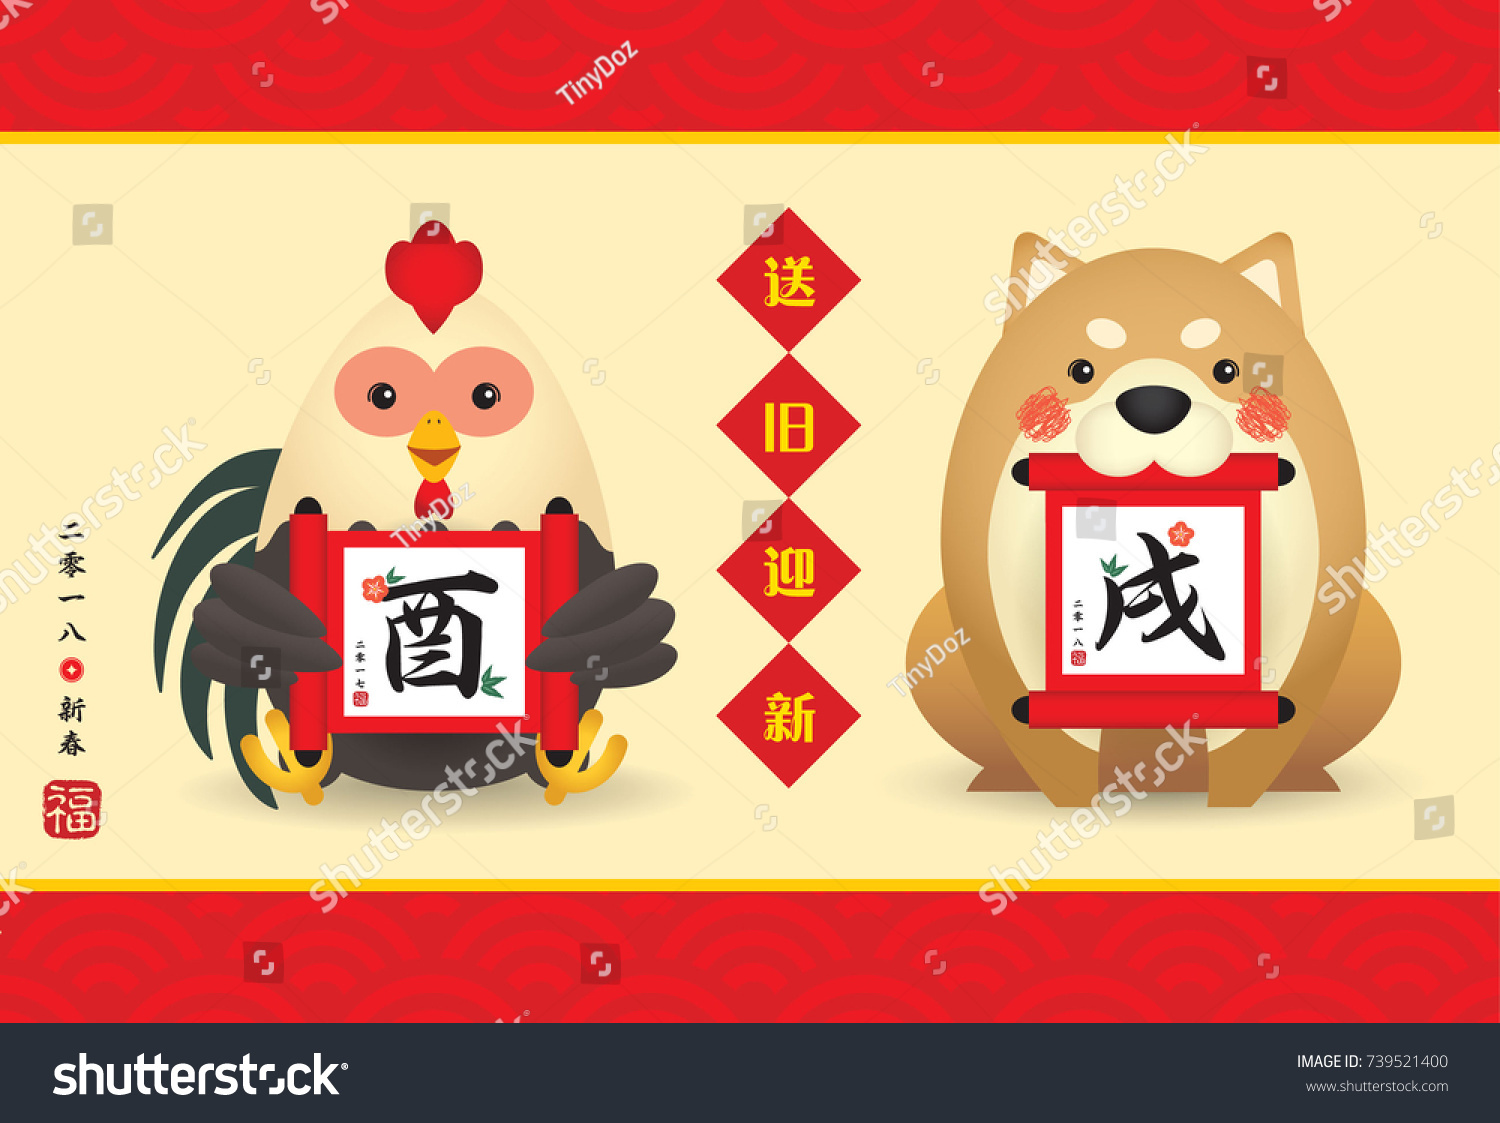 Chinese new year greeting card cute stock vector 739521400 chinese new year greeting card of cute cartoon chicken and dog with chinese scroll rooster kristyandbryce Images